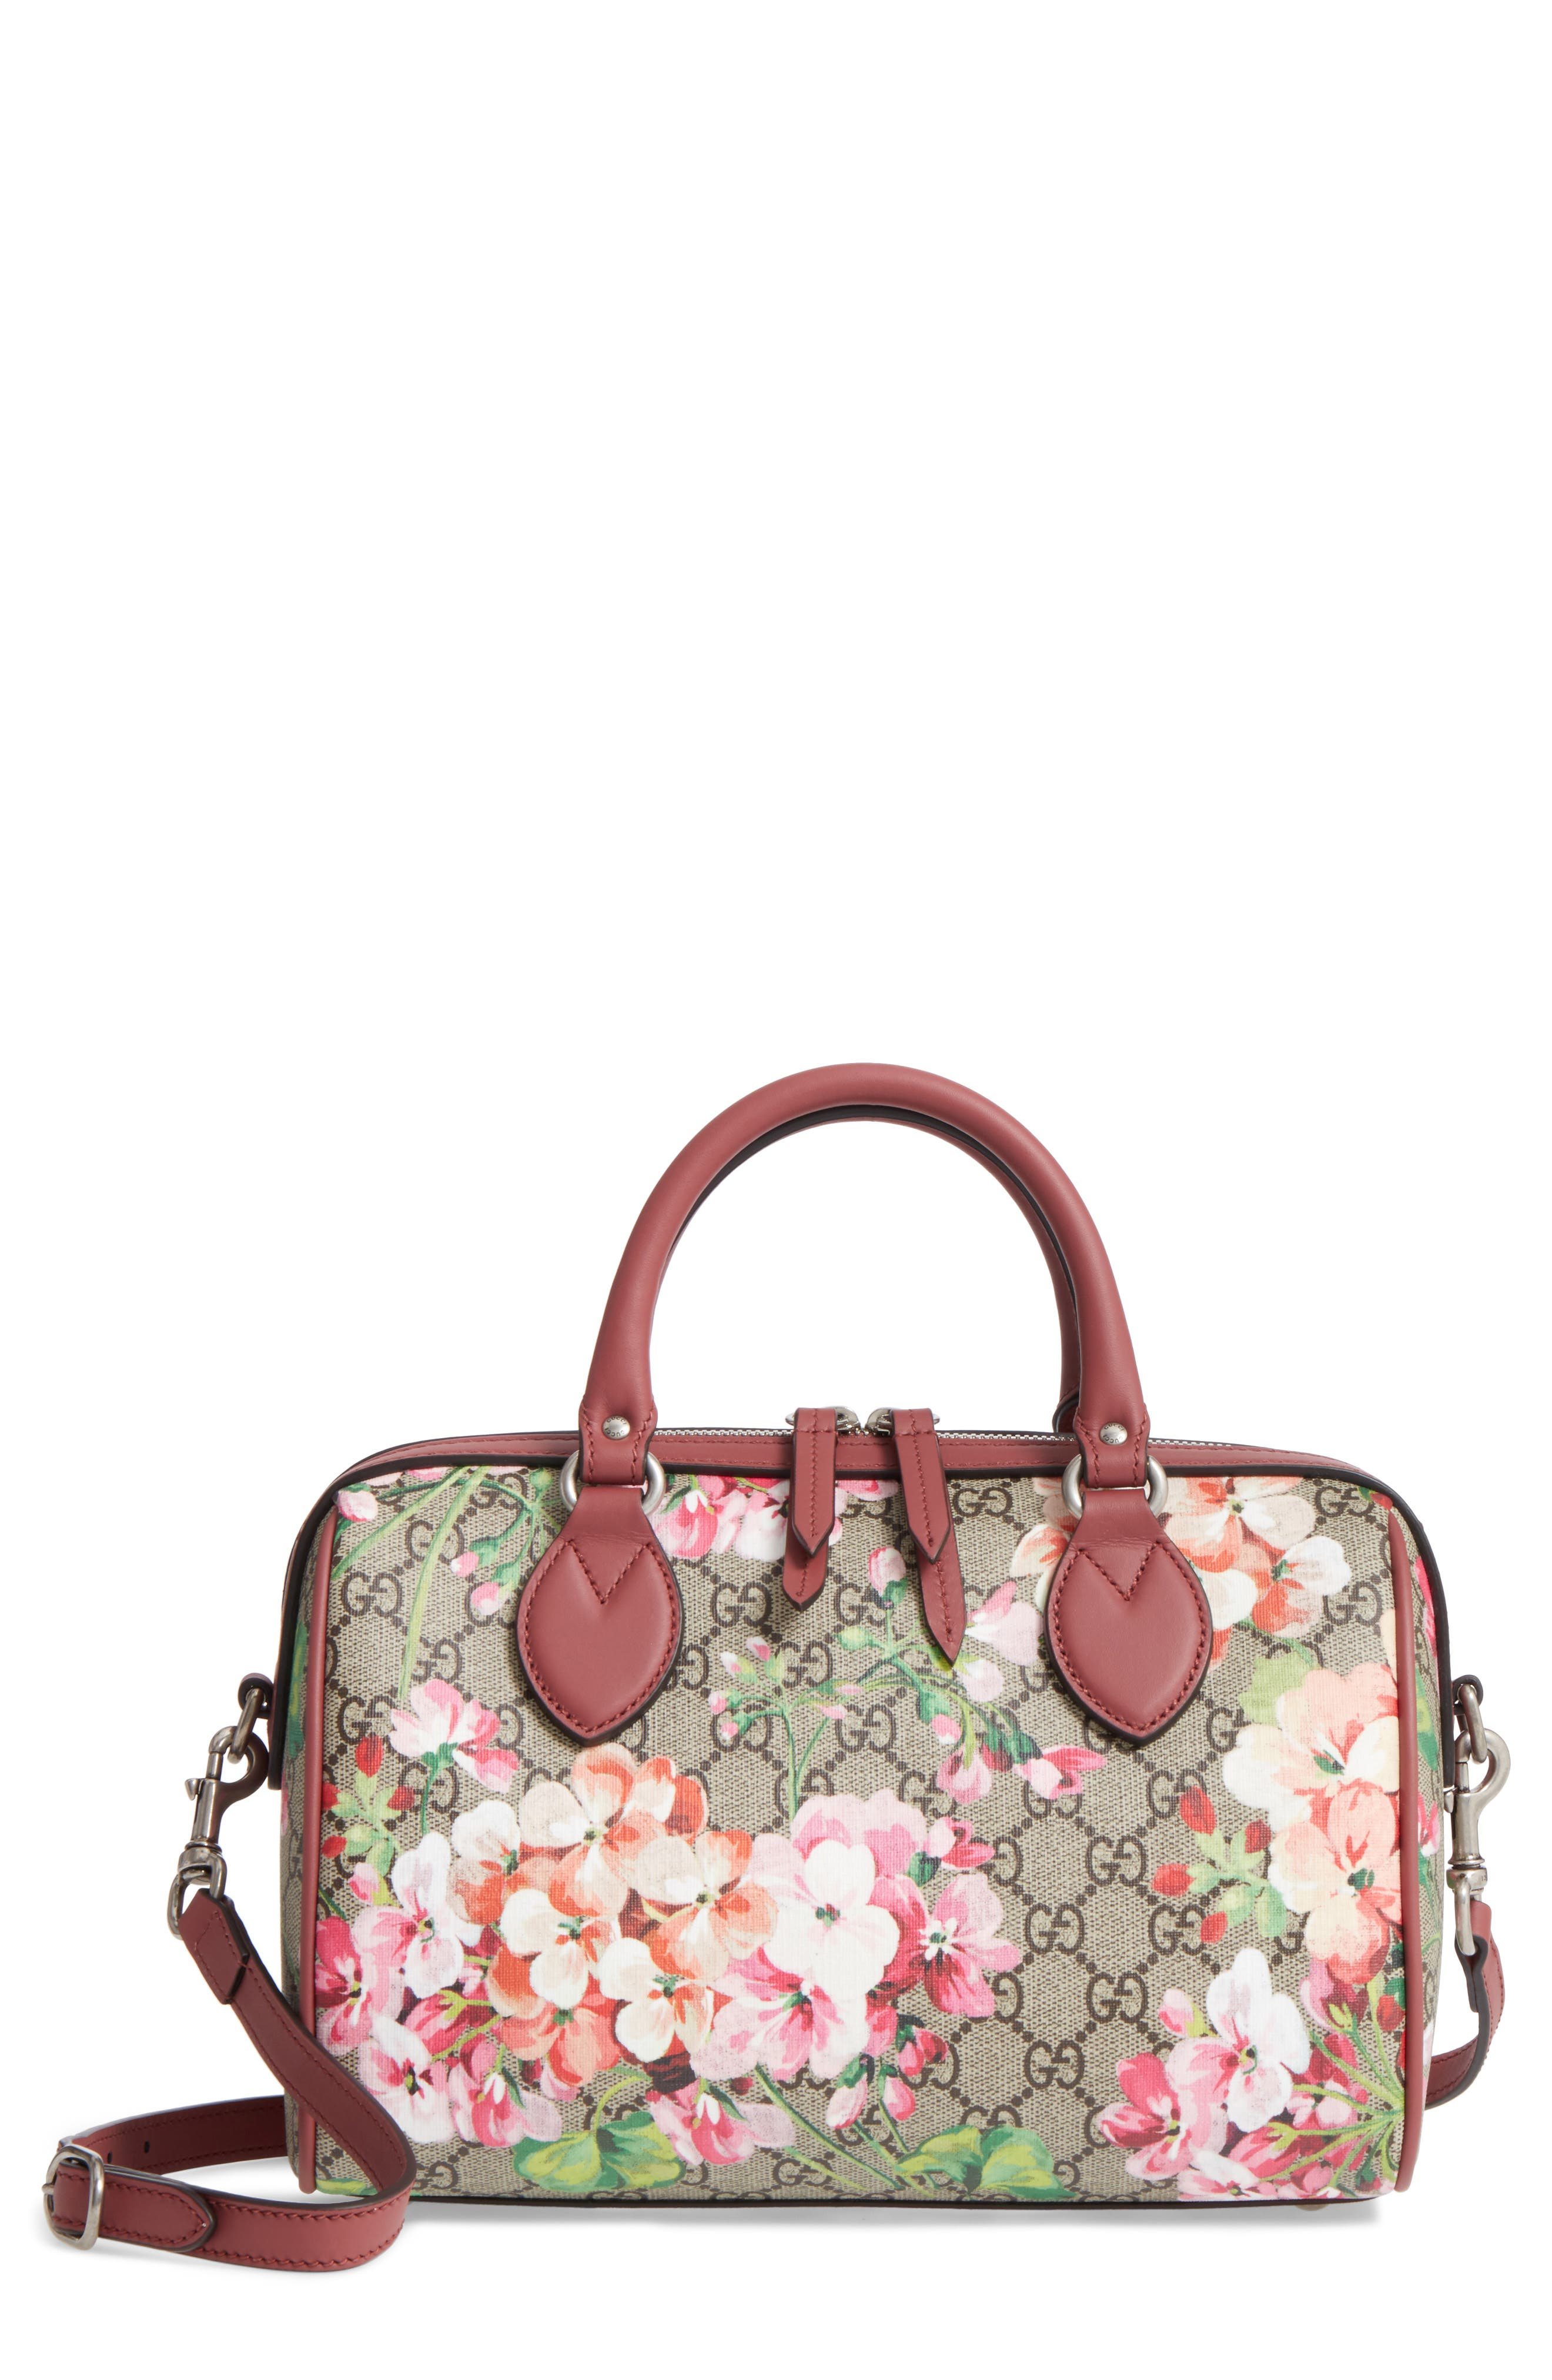 Small Blooms Top Handle GG Supreme Canvas Bag,                         Main,                         color, Multi/Dry Rose